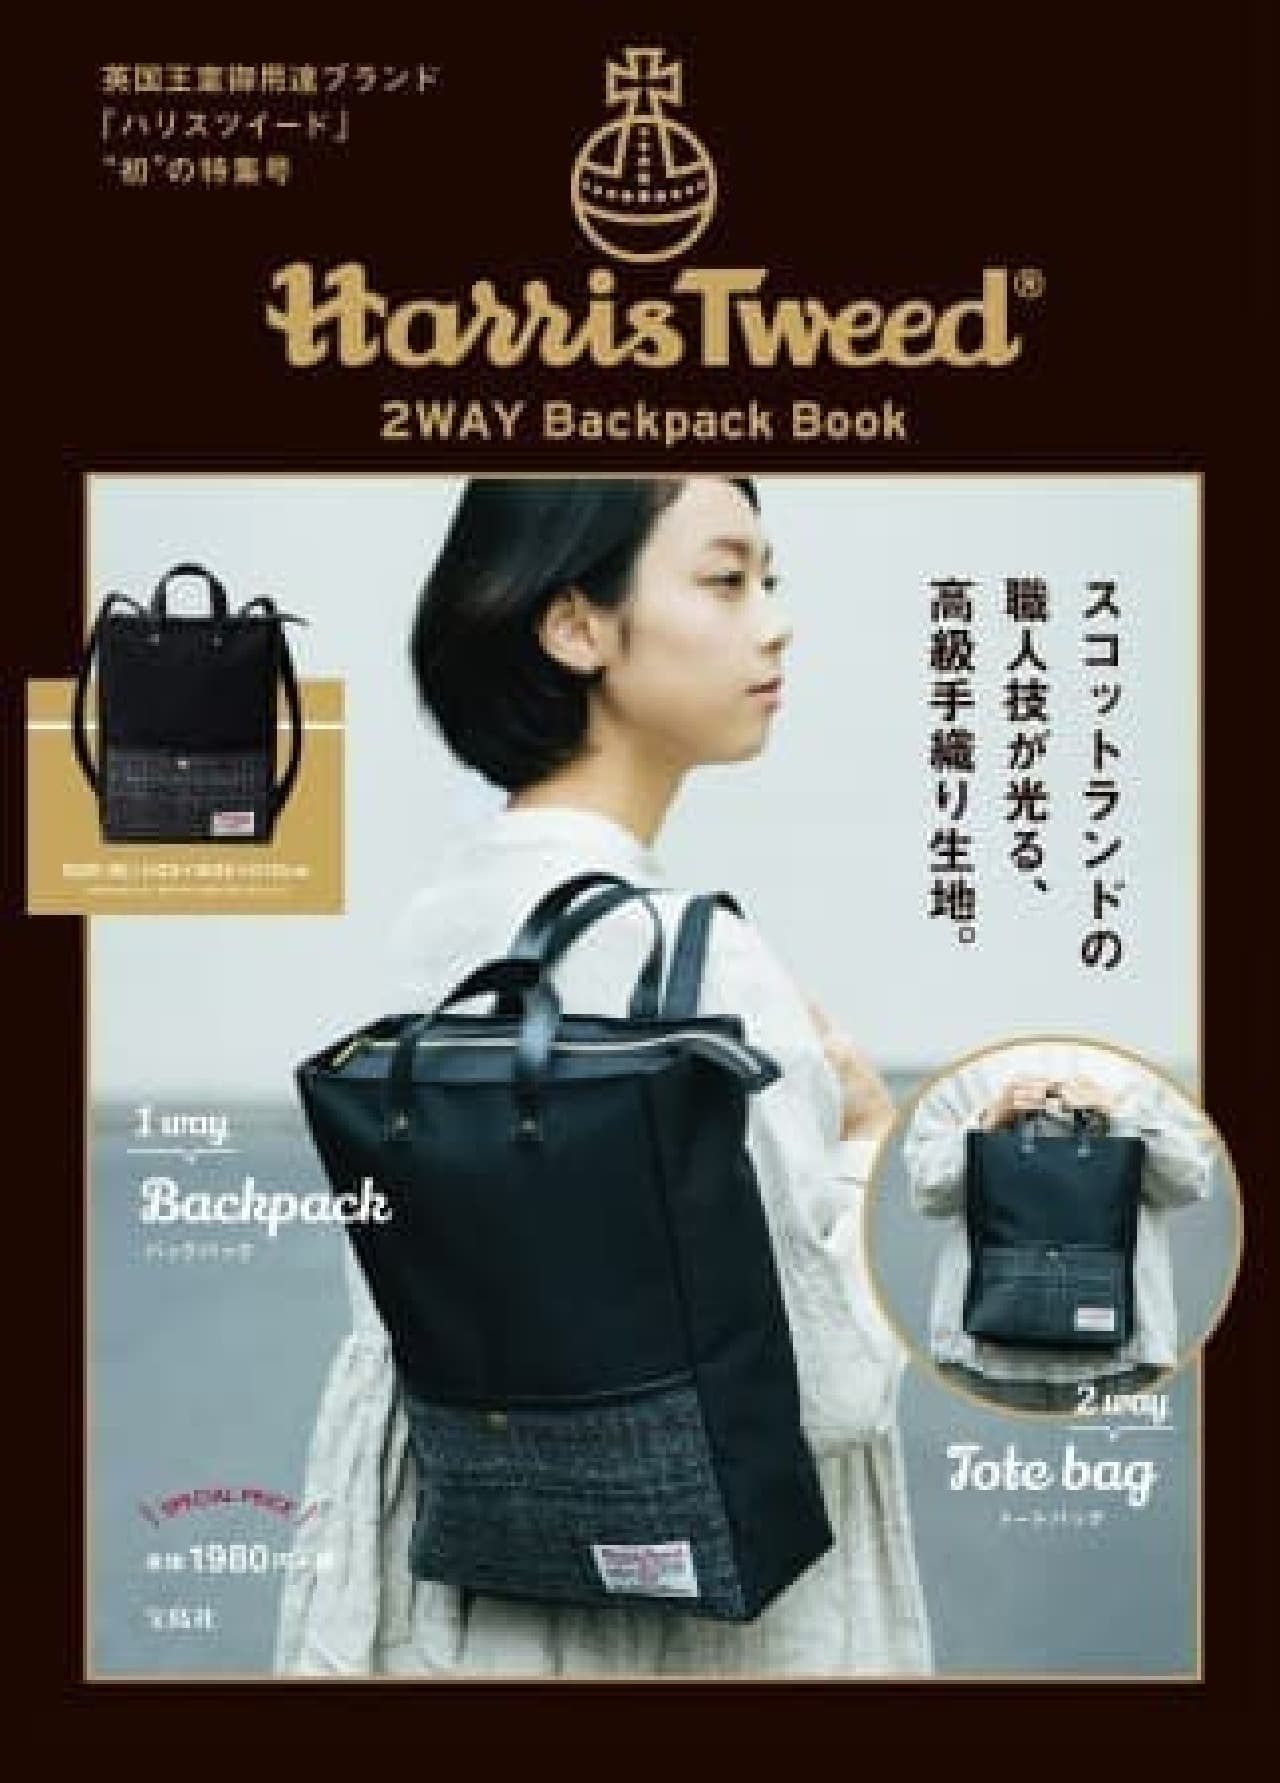 宝島社「Harris Tweed 2WAY Backpack Book」